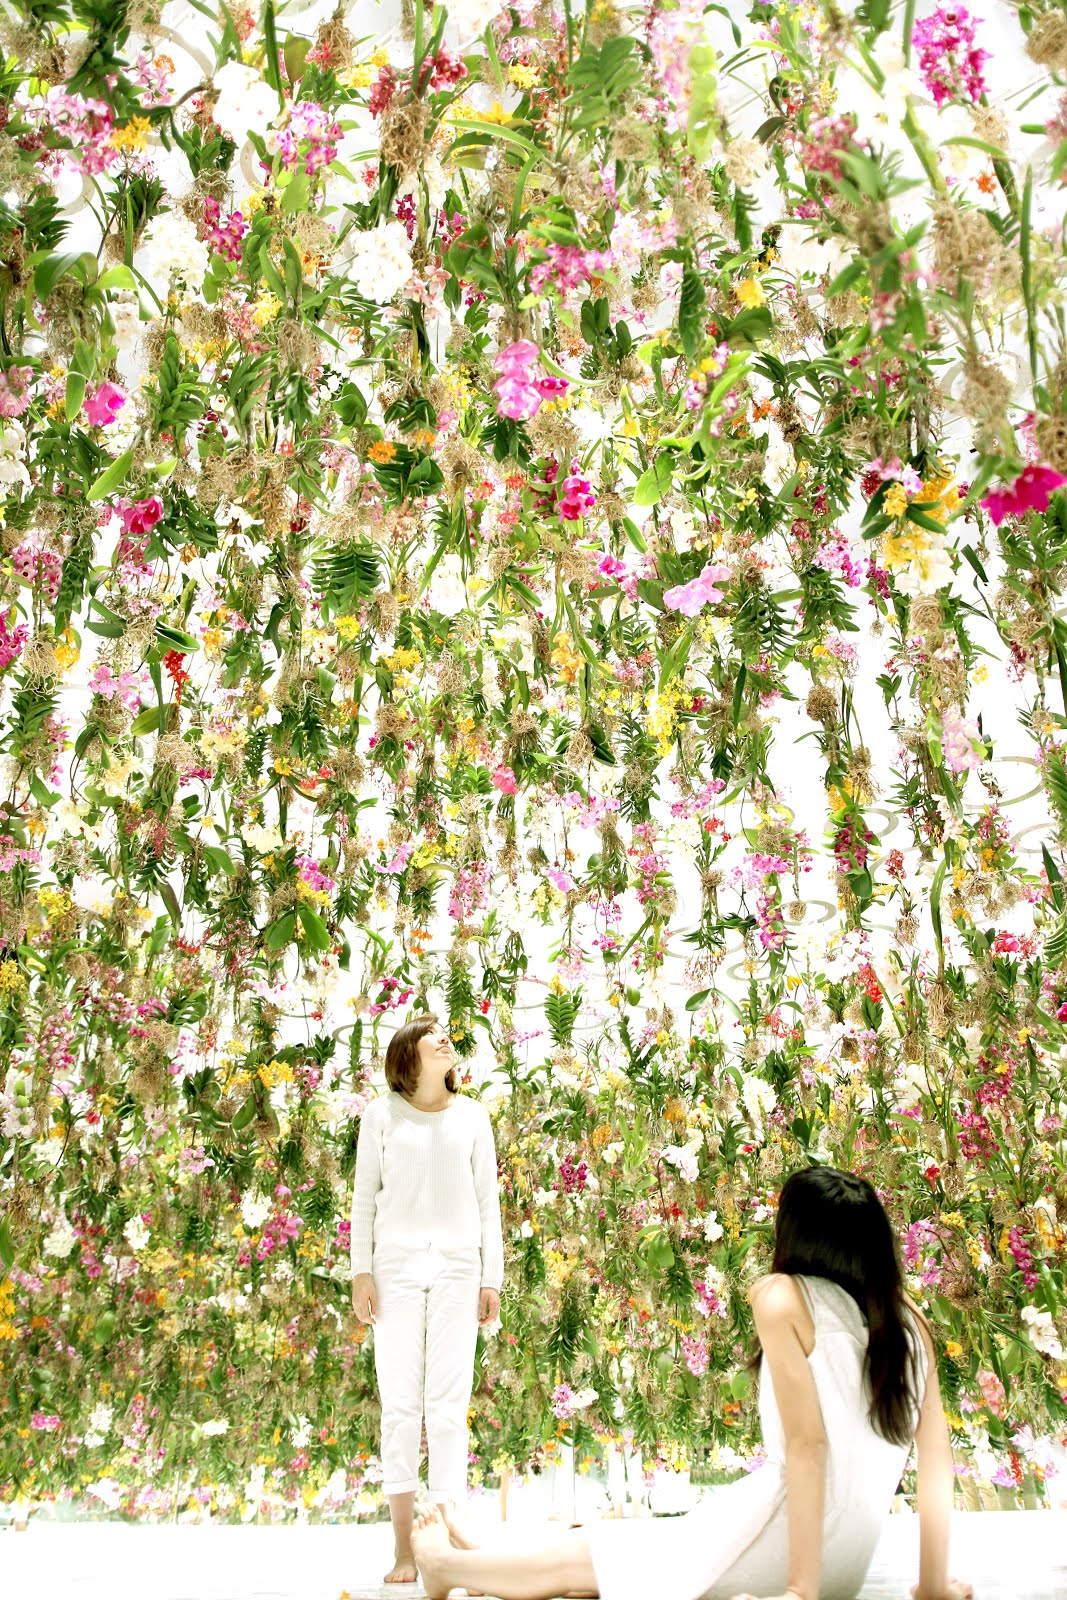 Floating_Flower_Garden_Flowers_and_I_are_of_the_same_root_the_Garden_and_I_are_one_Floating_Flower_Garden_